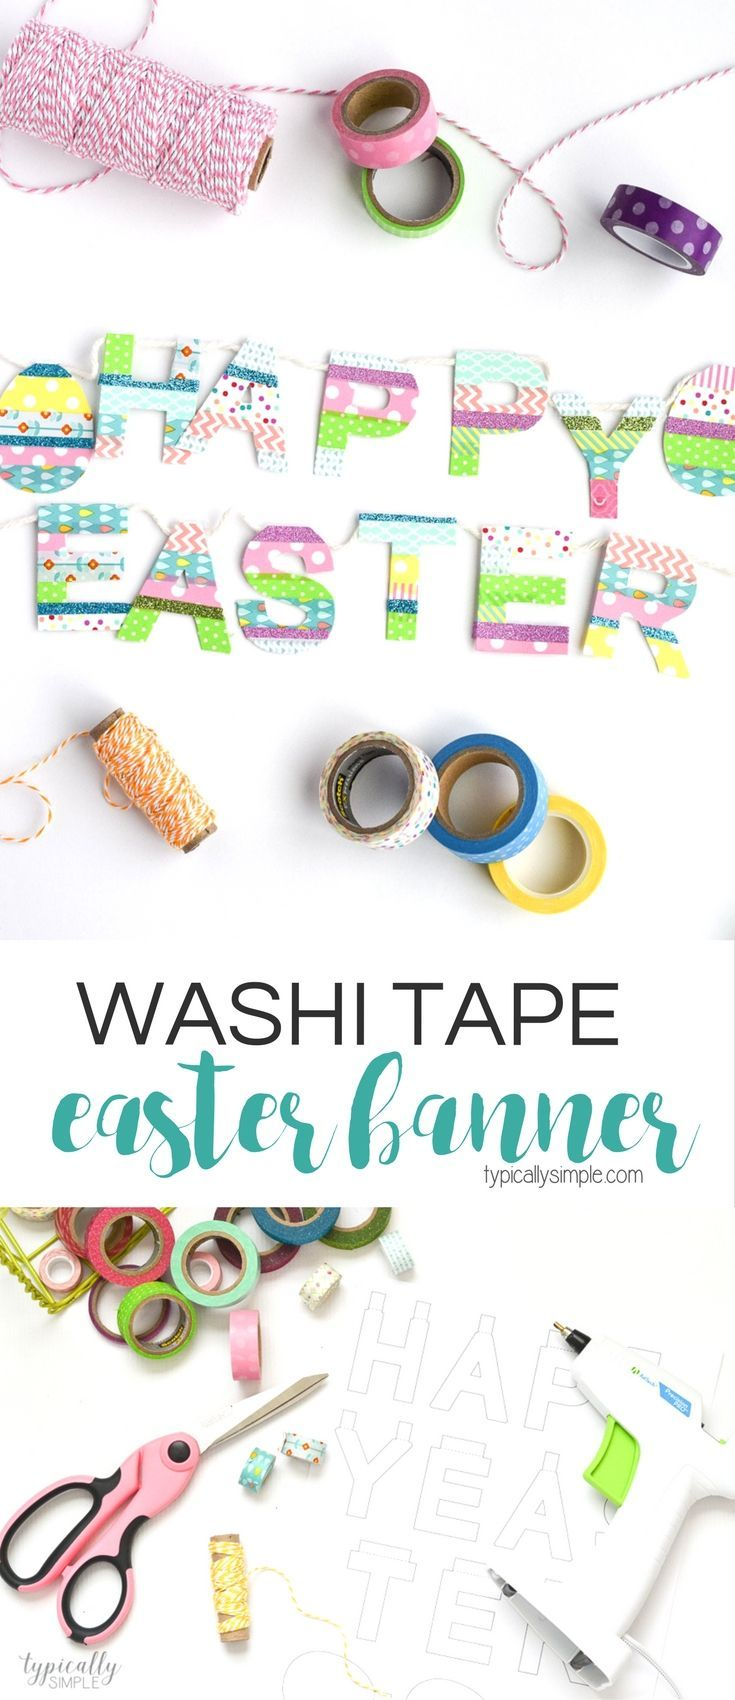 A great way to use up some of that washi tape stash, this Easter banner is a fun addition to your spring decor! Includes a free Silhouette cut file!